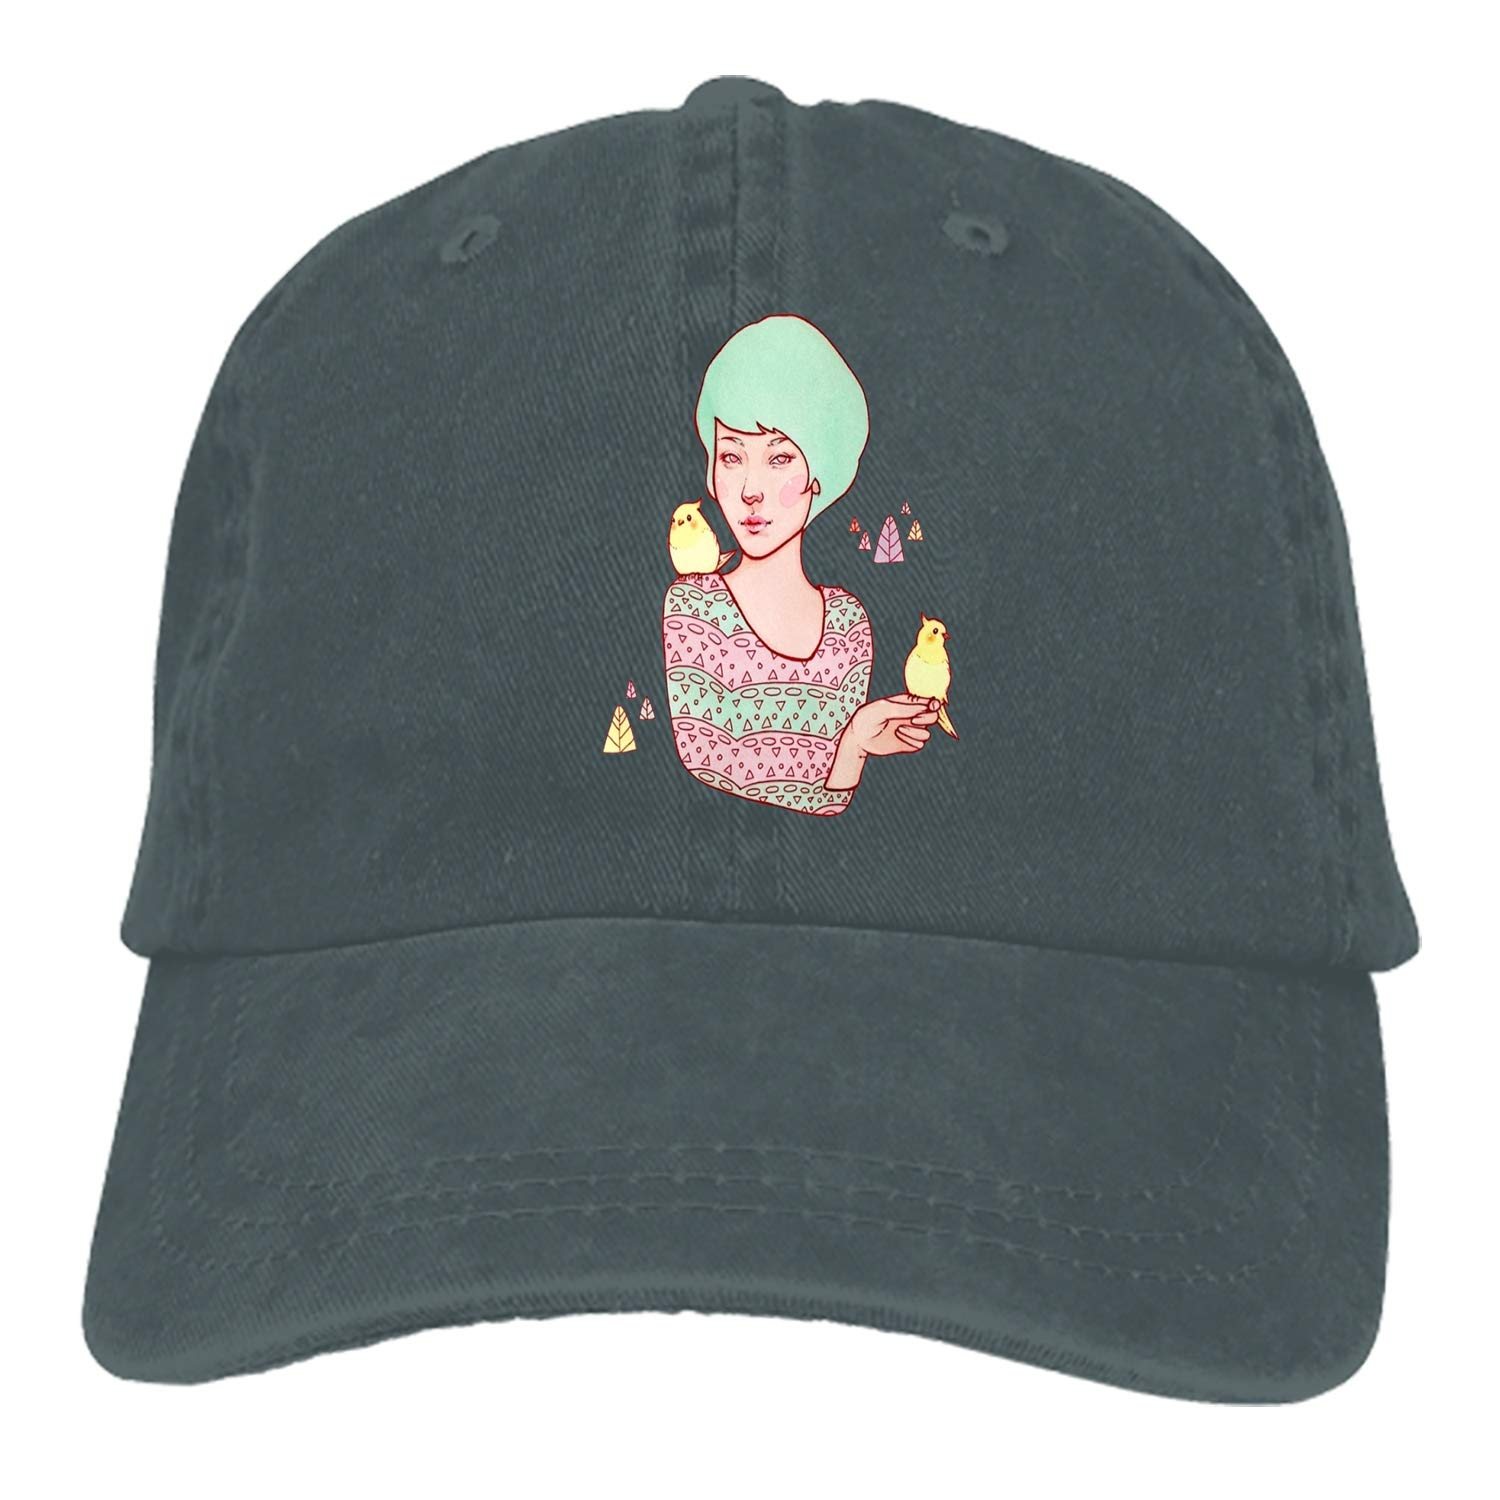 SHUANGRENDE You Complete Me Adjustable Casual Cool Baseball Cap Retro Cowboy Hat Cotton Dyed Caps